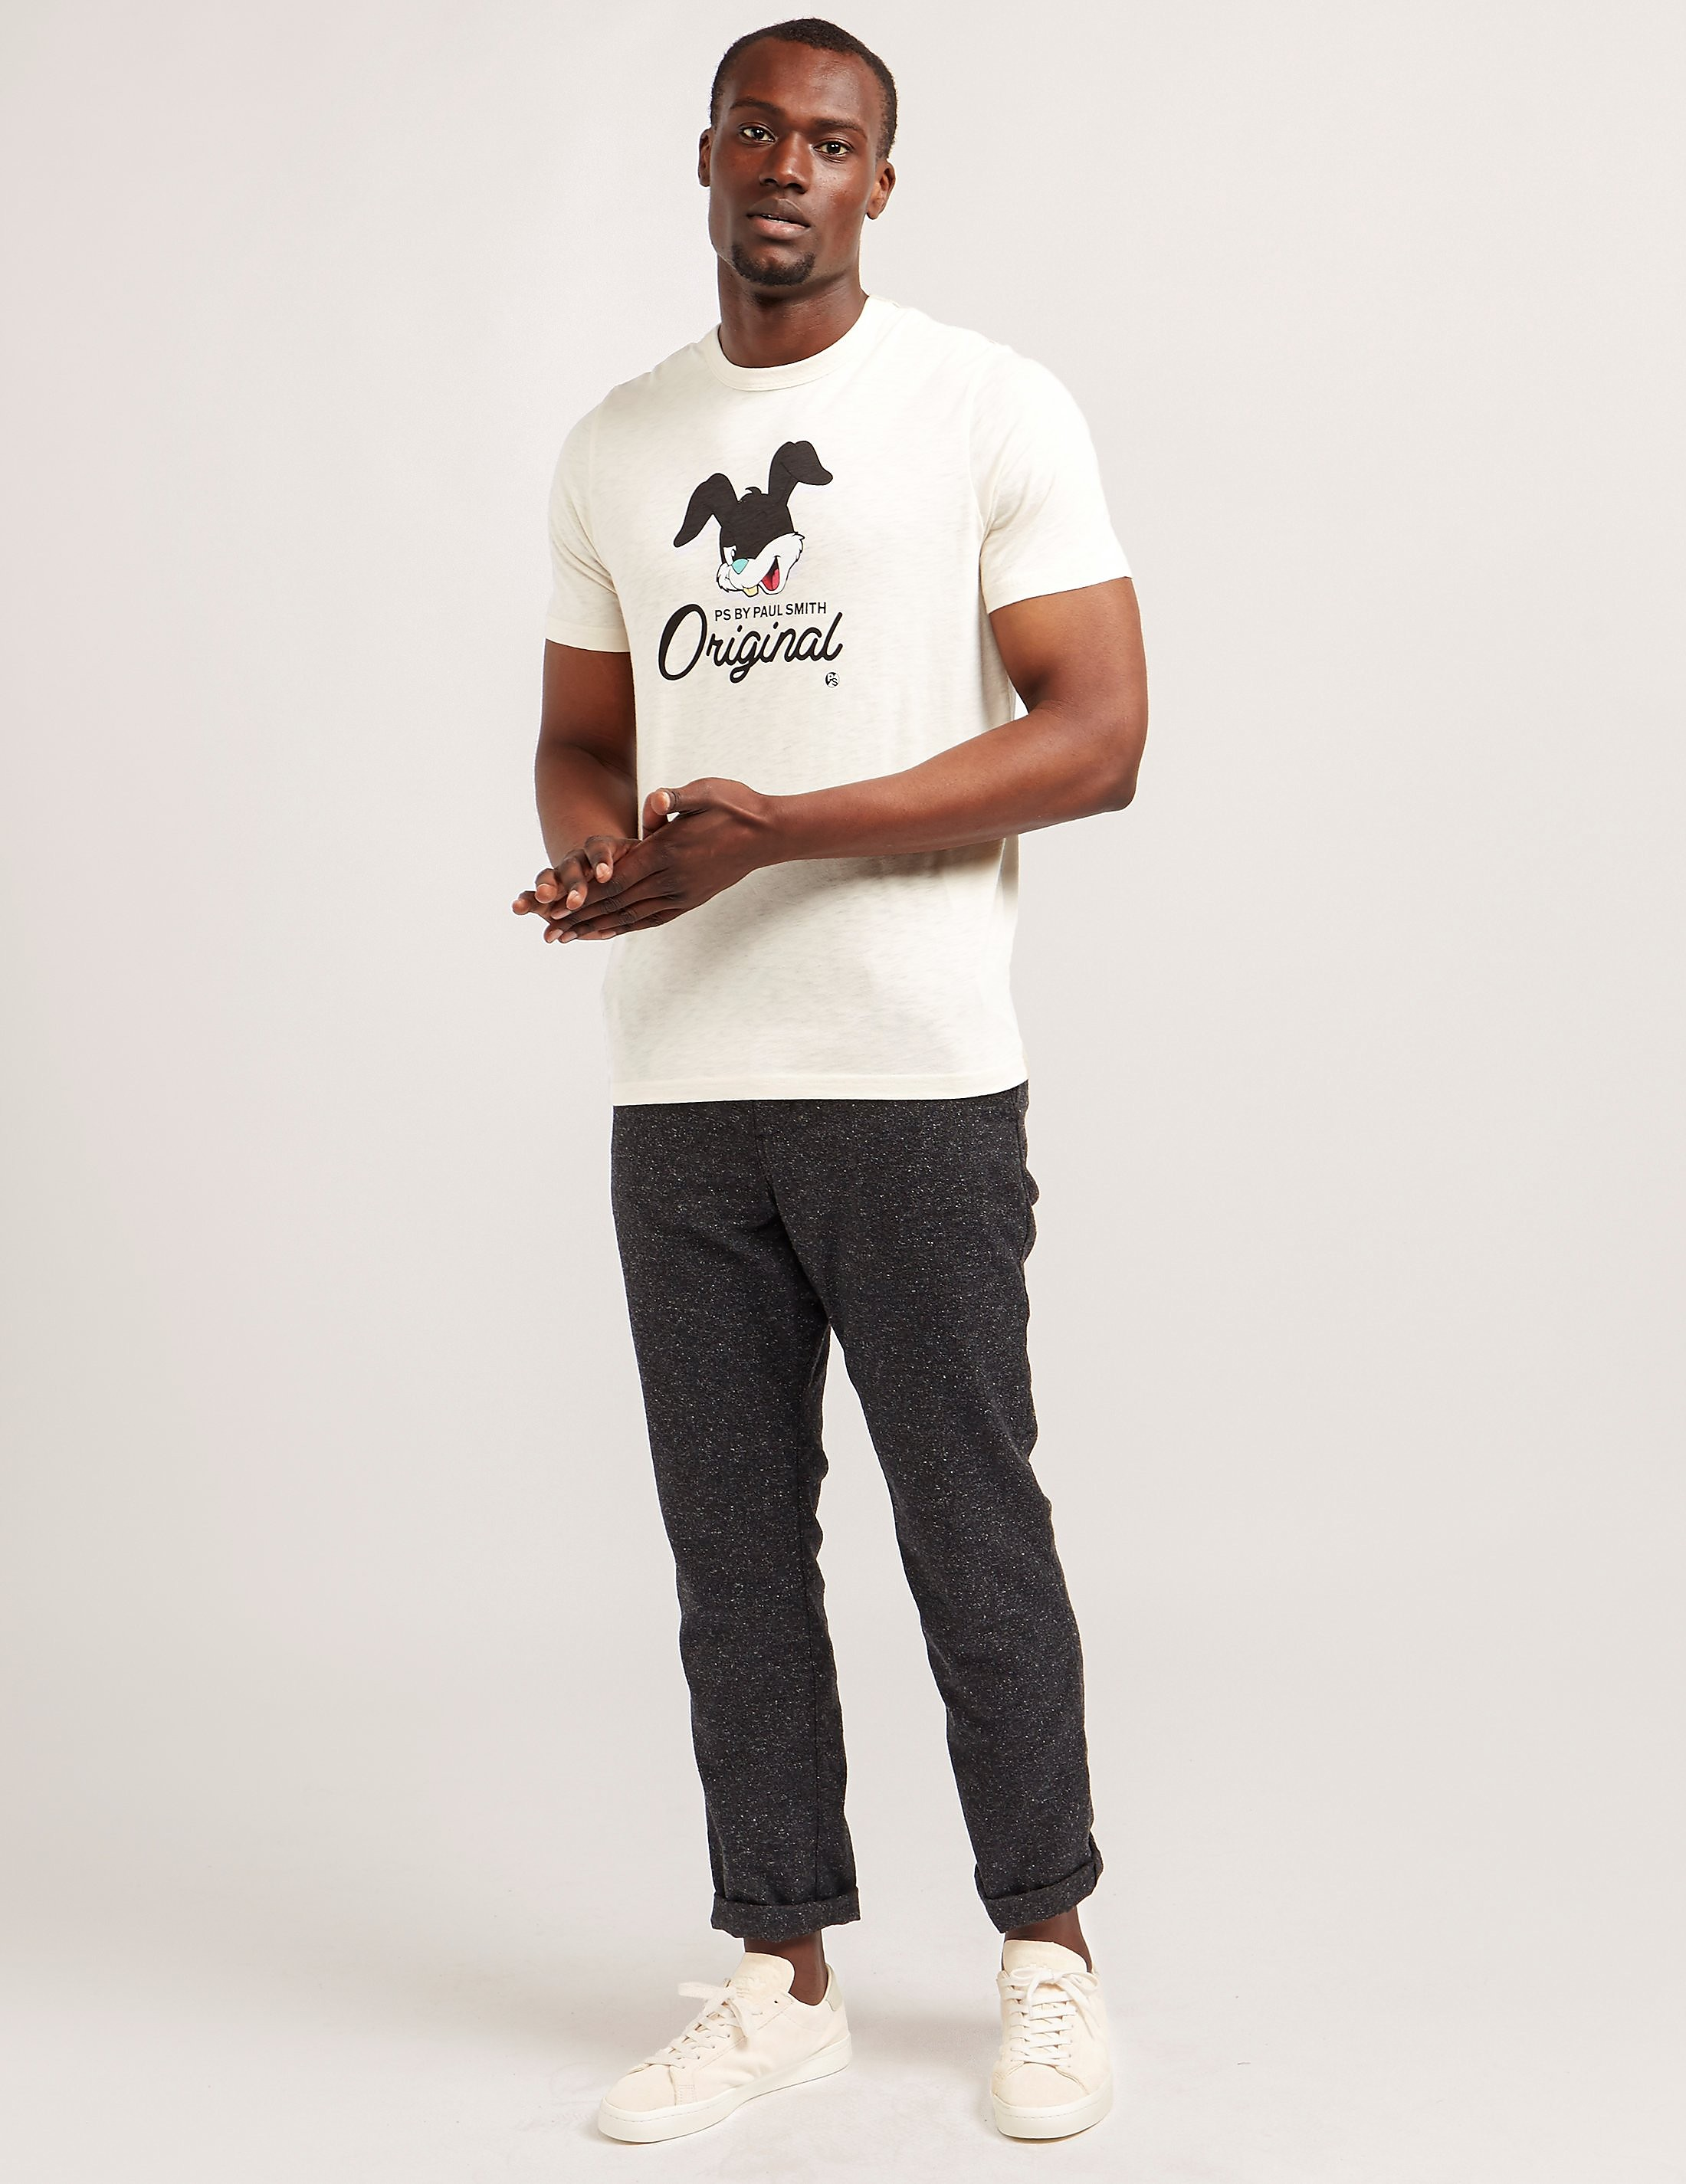 Paul Smith Original Rabbit Short Sleeve T-Shirt